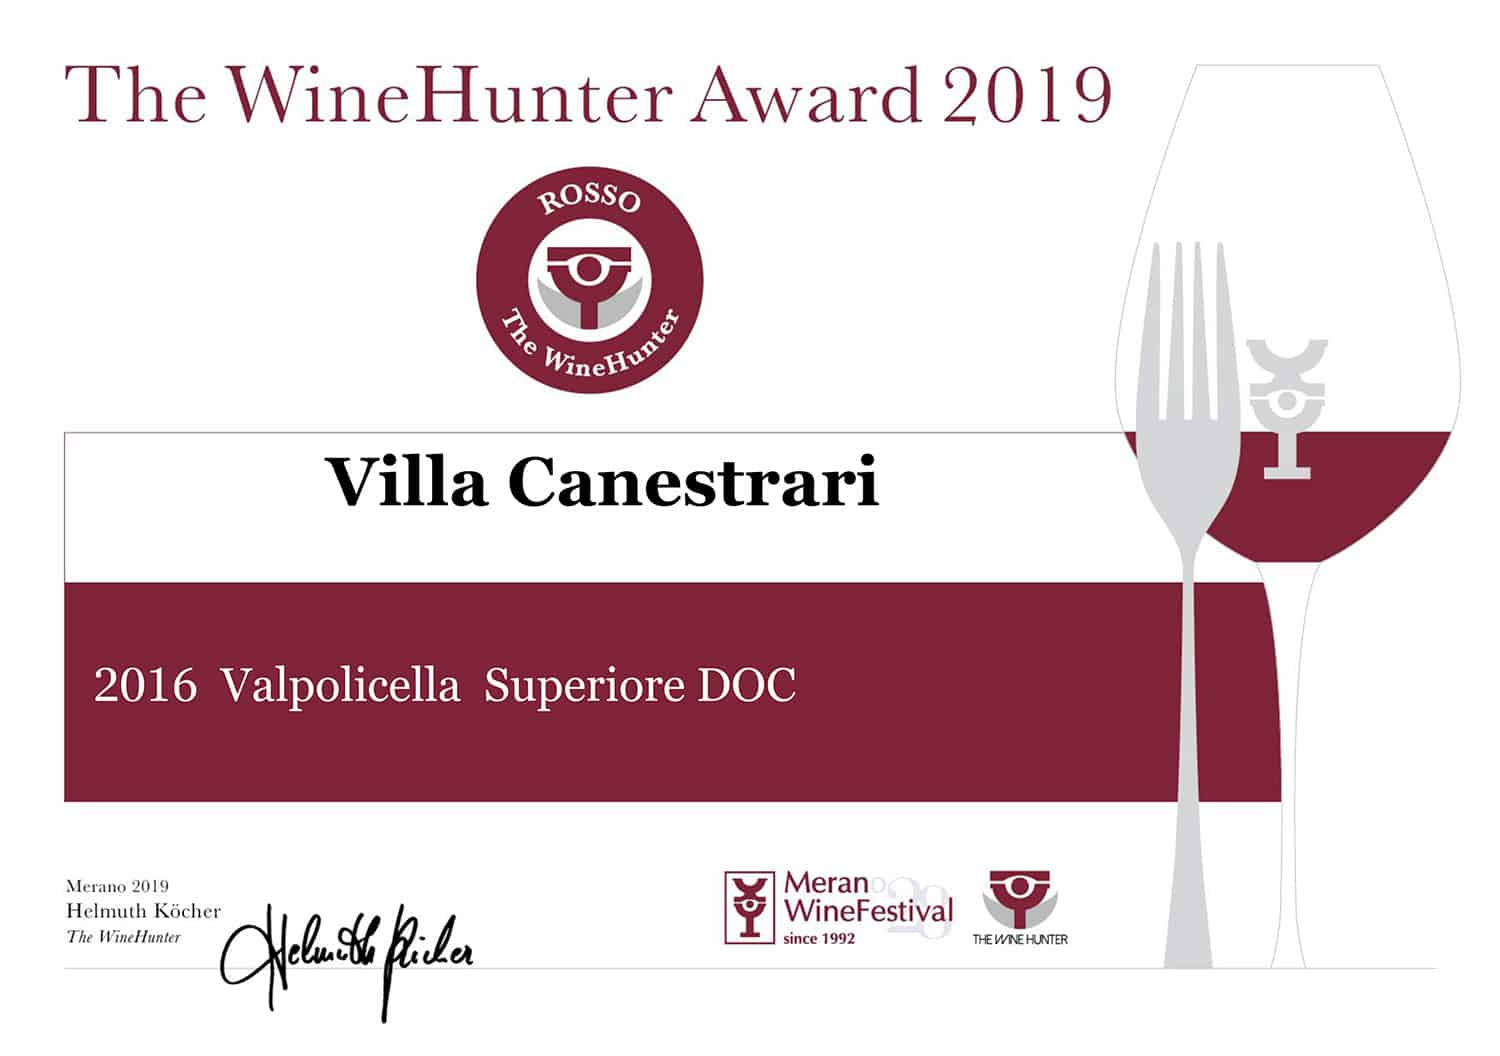 The Wine Hunter award 2019 - Valpolicella 2016